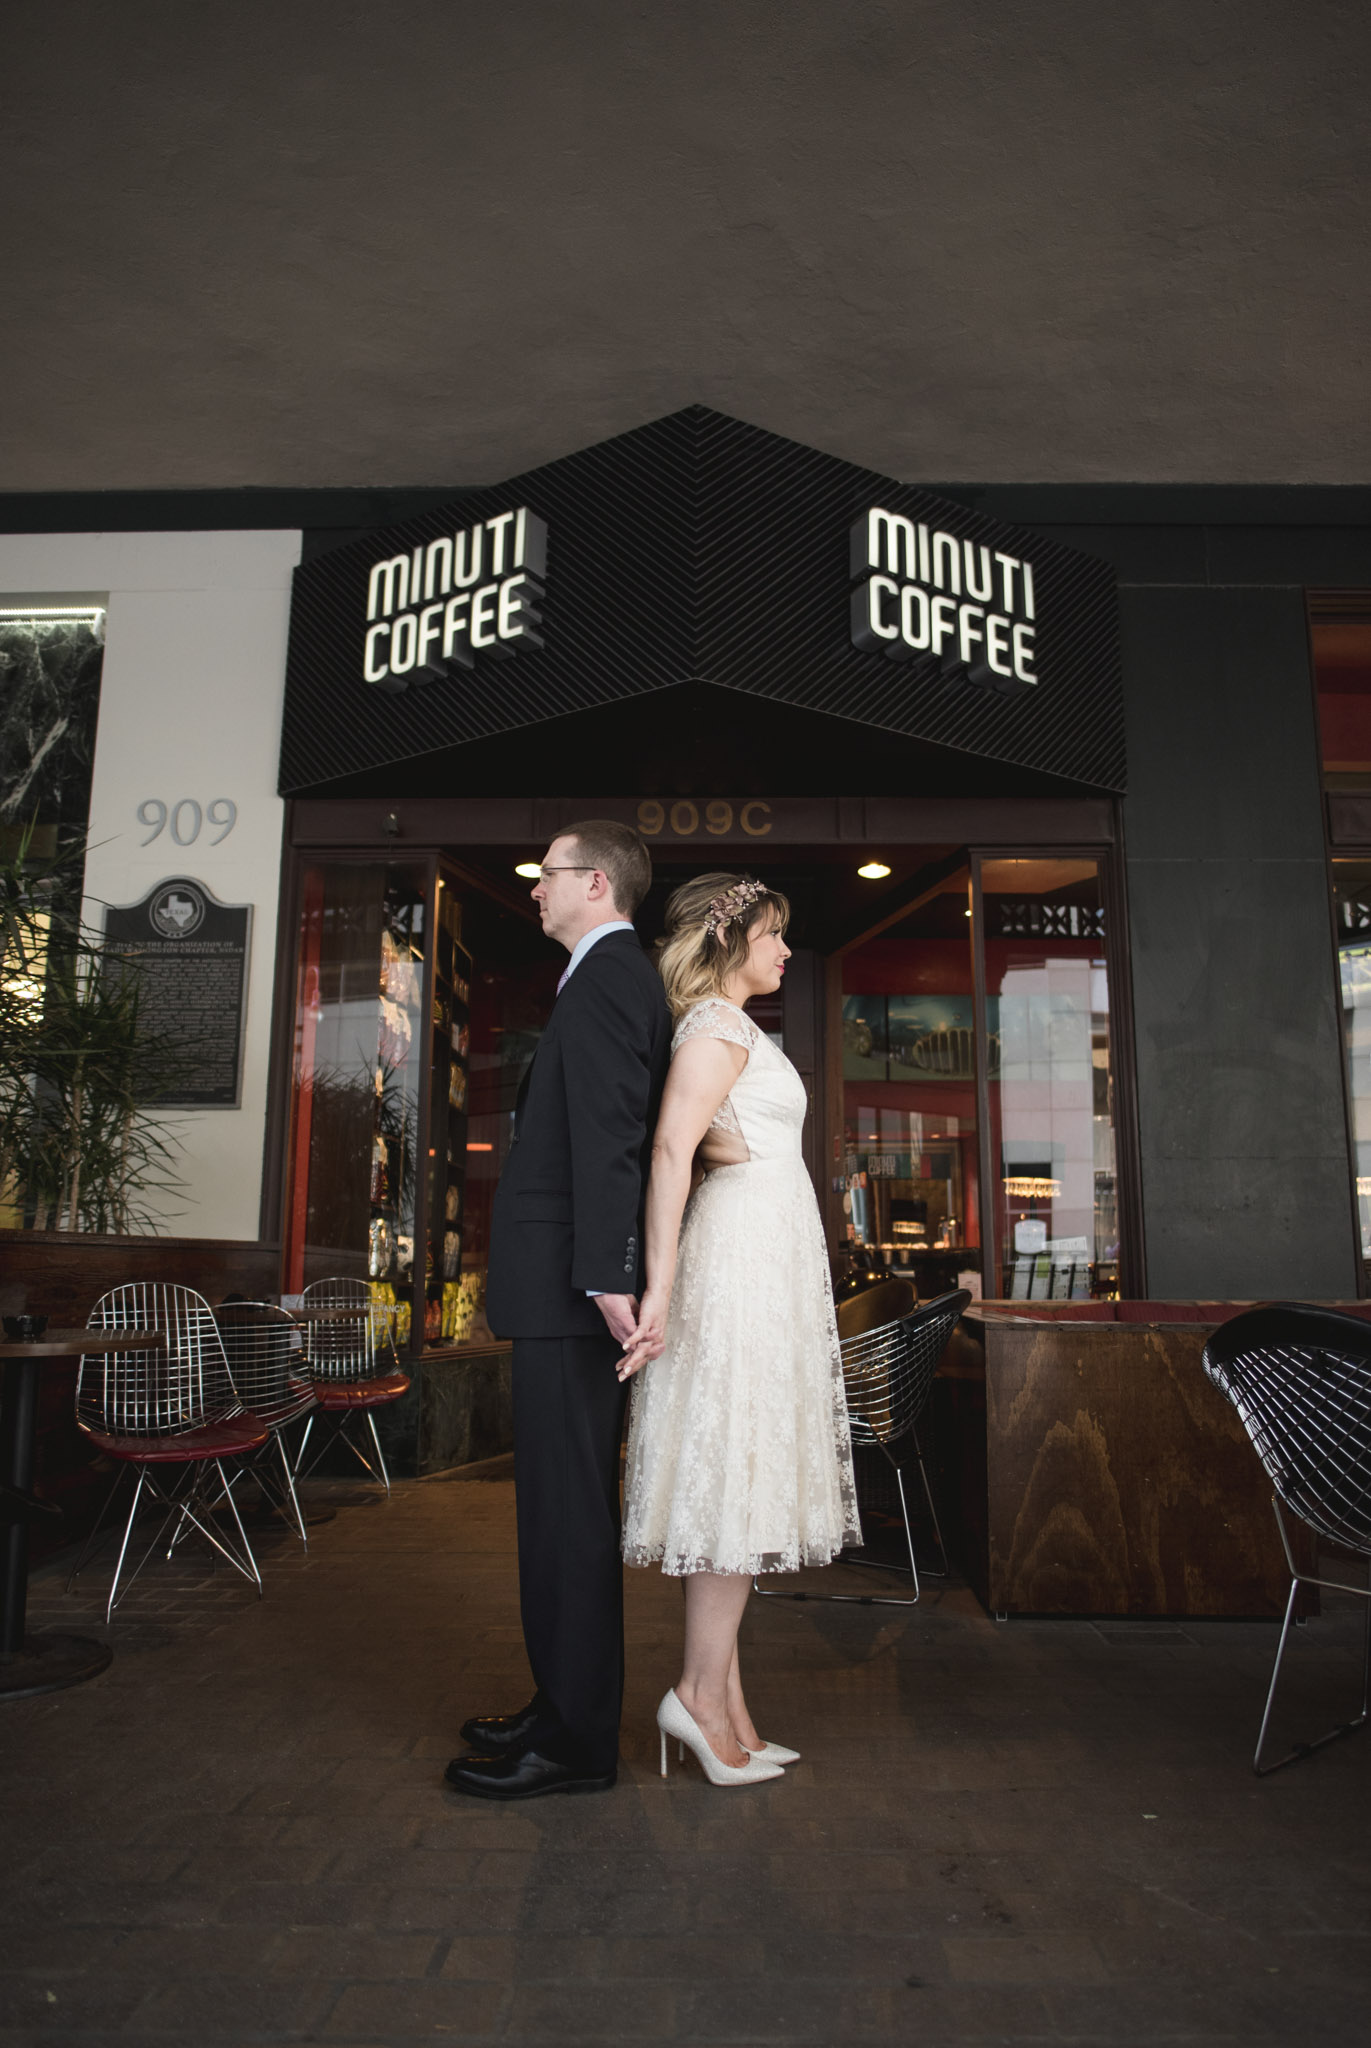 Houston-main-street-minuti-coffee-couple-session